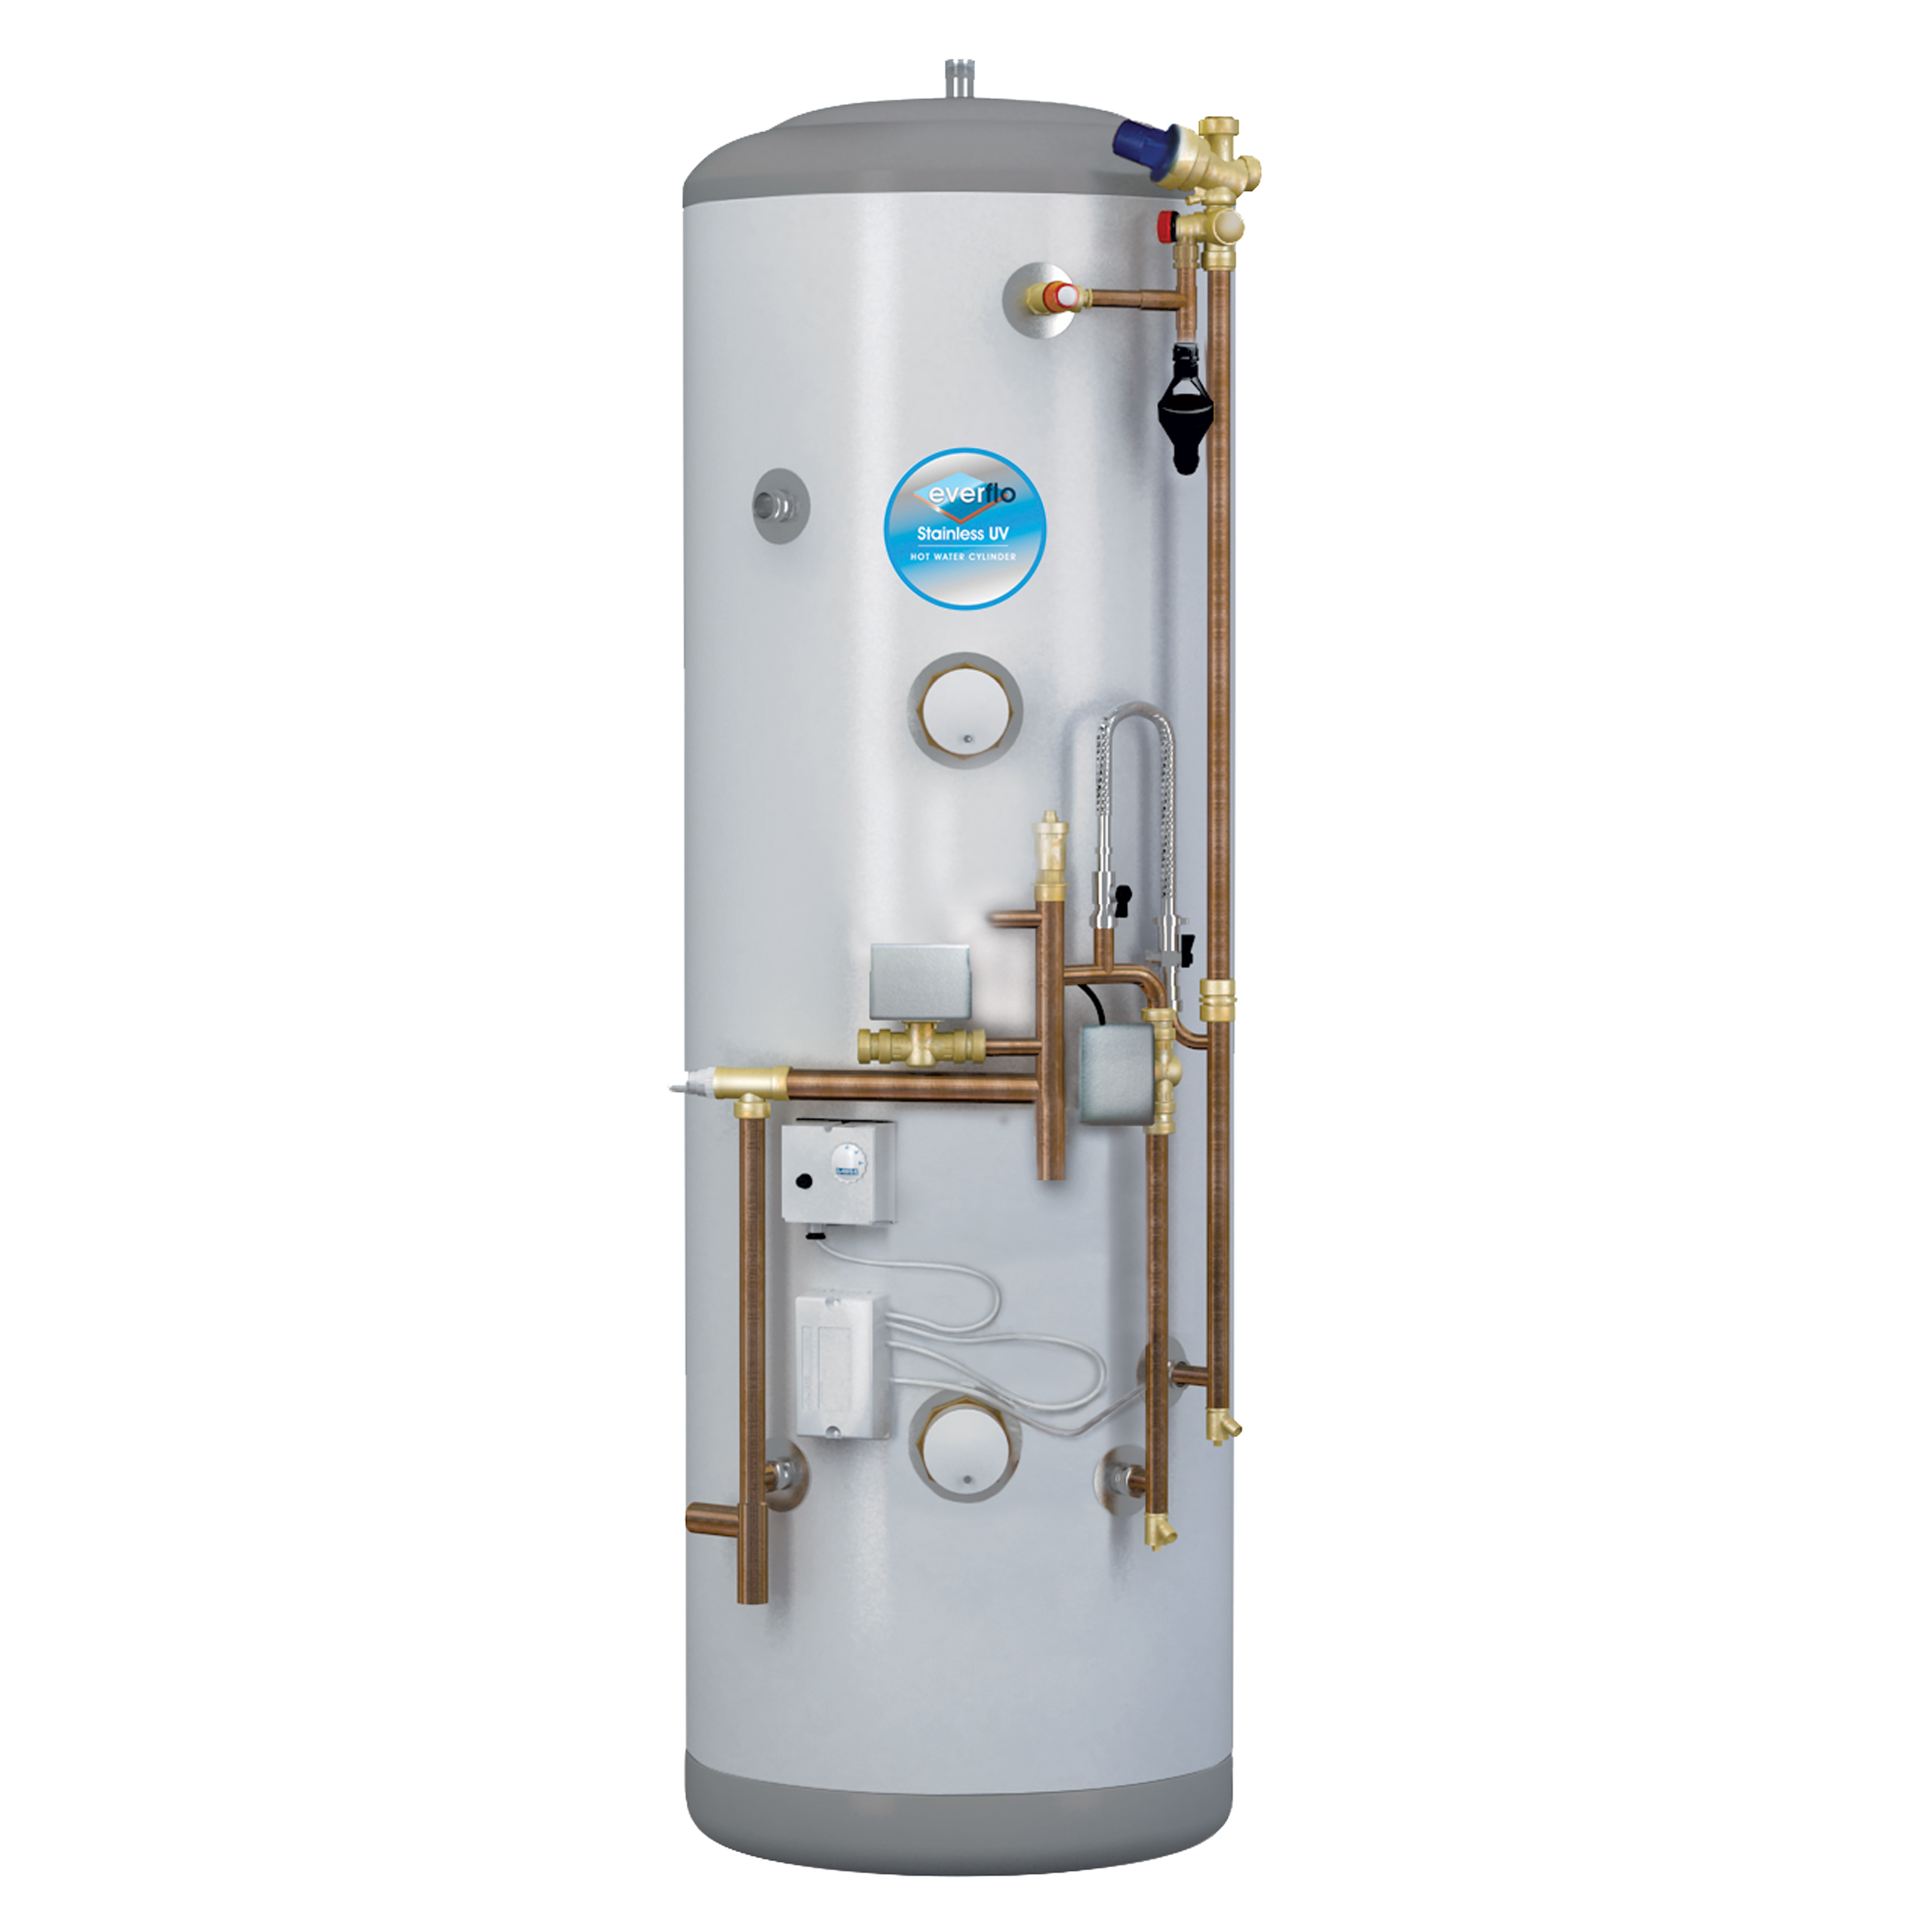 What is the Everflo System-Fit? - Compass Plumbing Blog